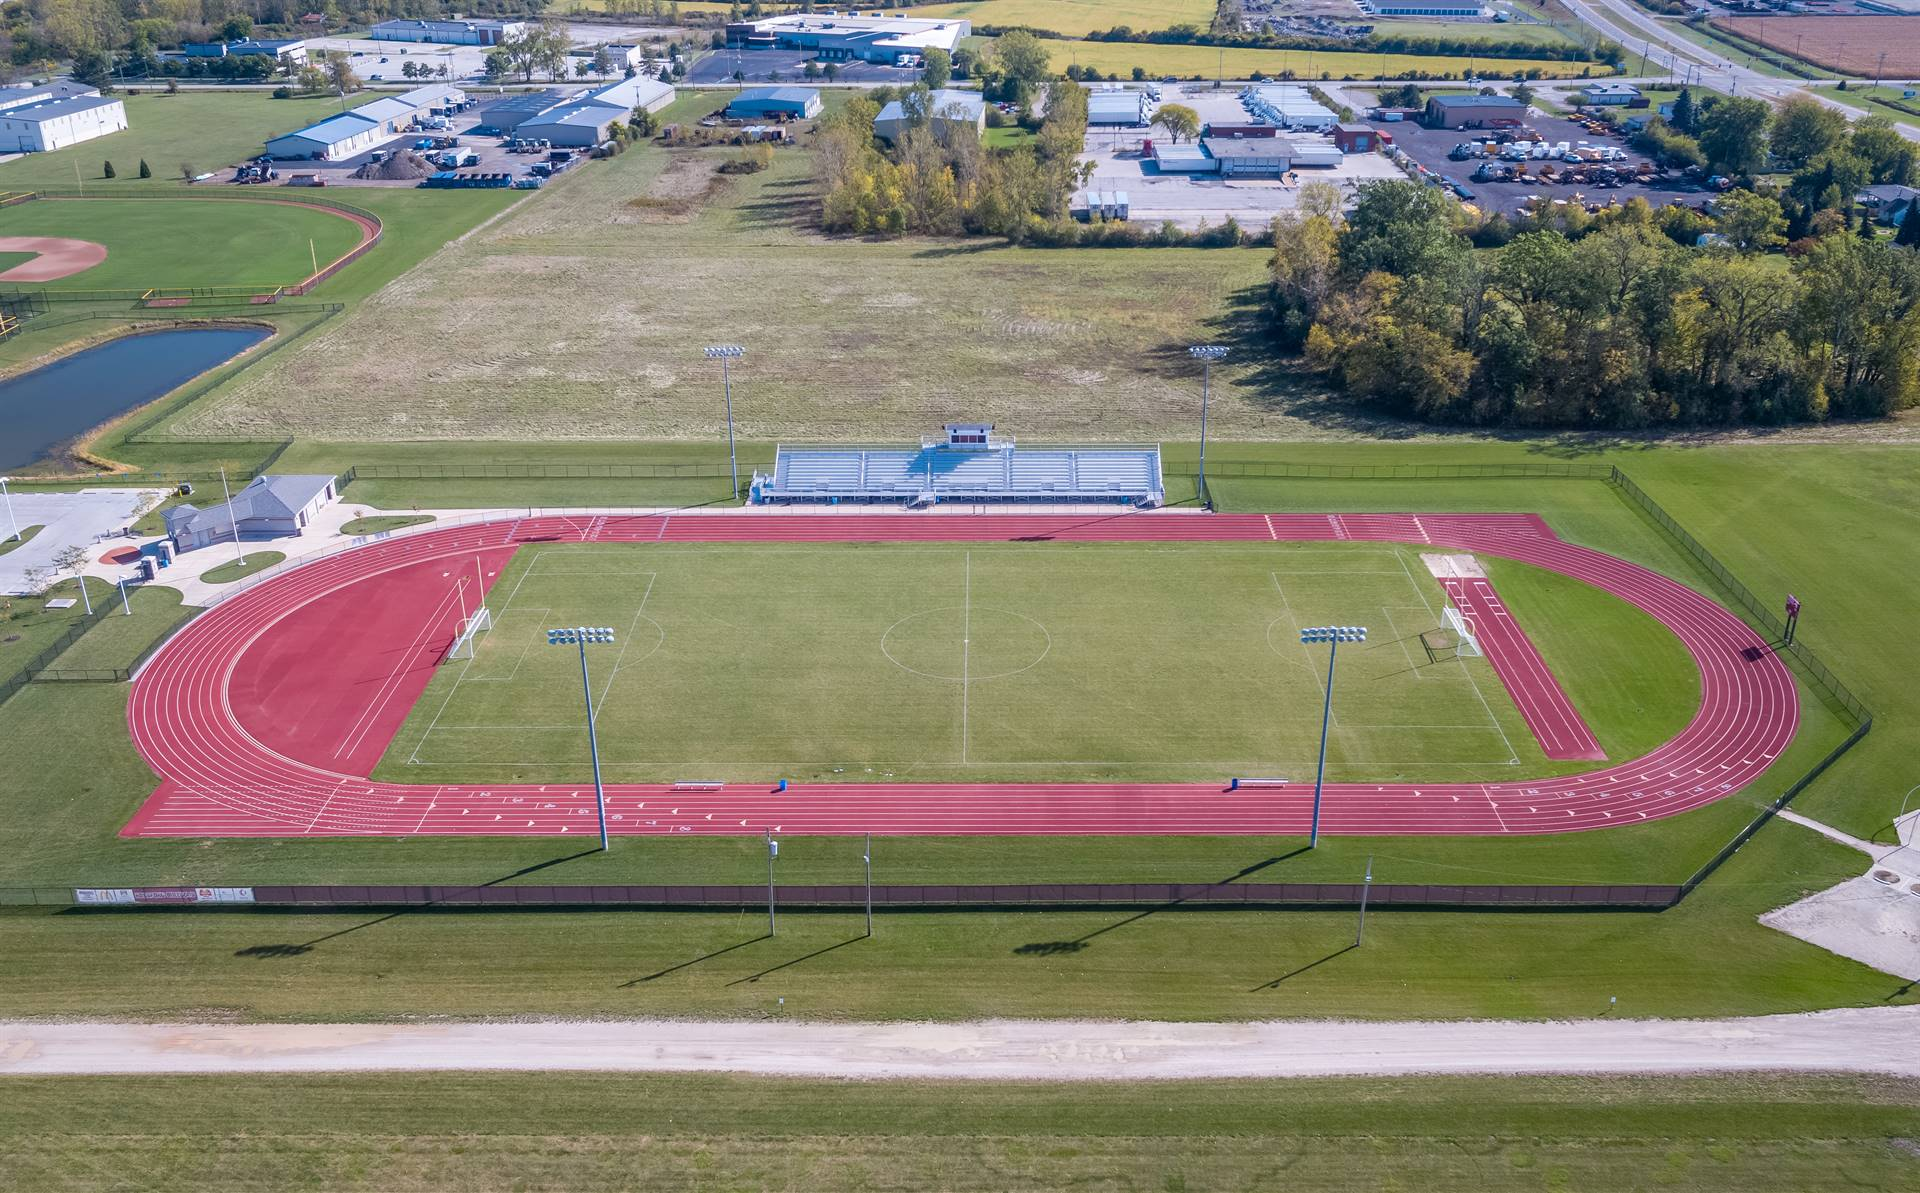 Aerial view of soccer field